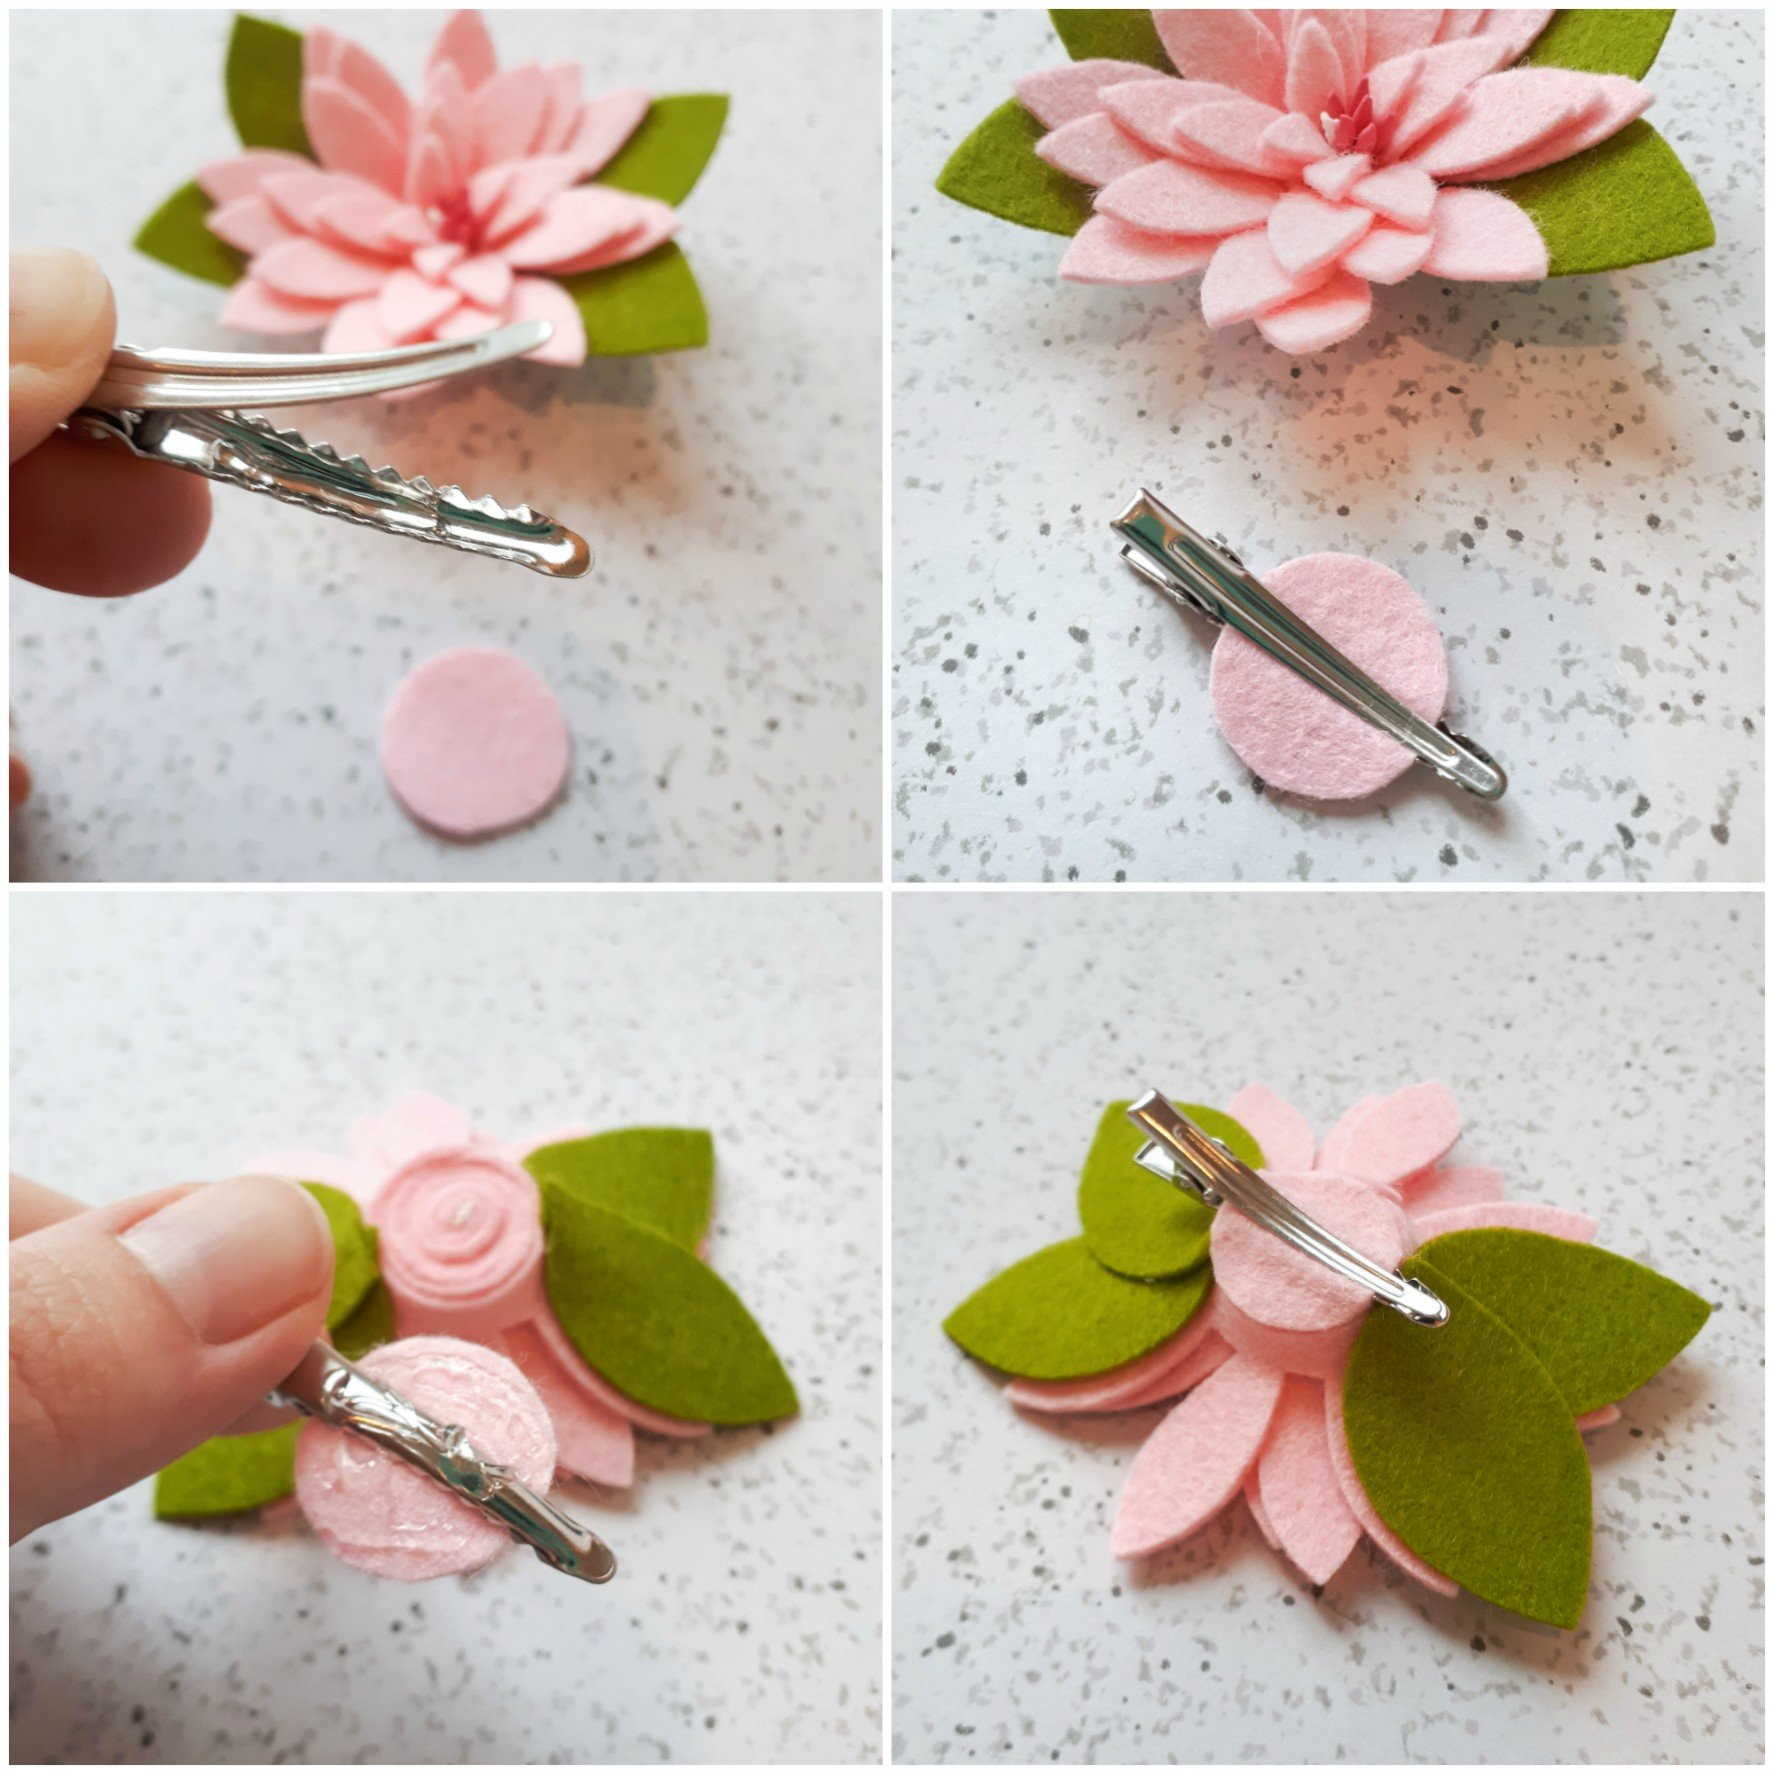 How to attach a hair clip to a felt flower